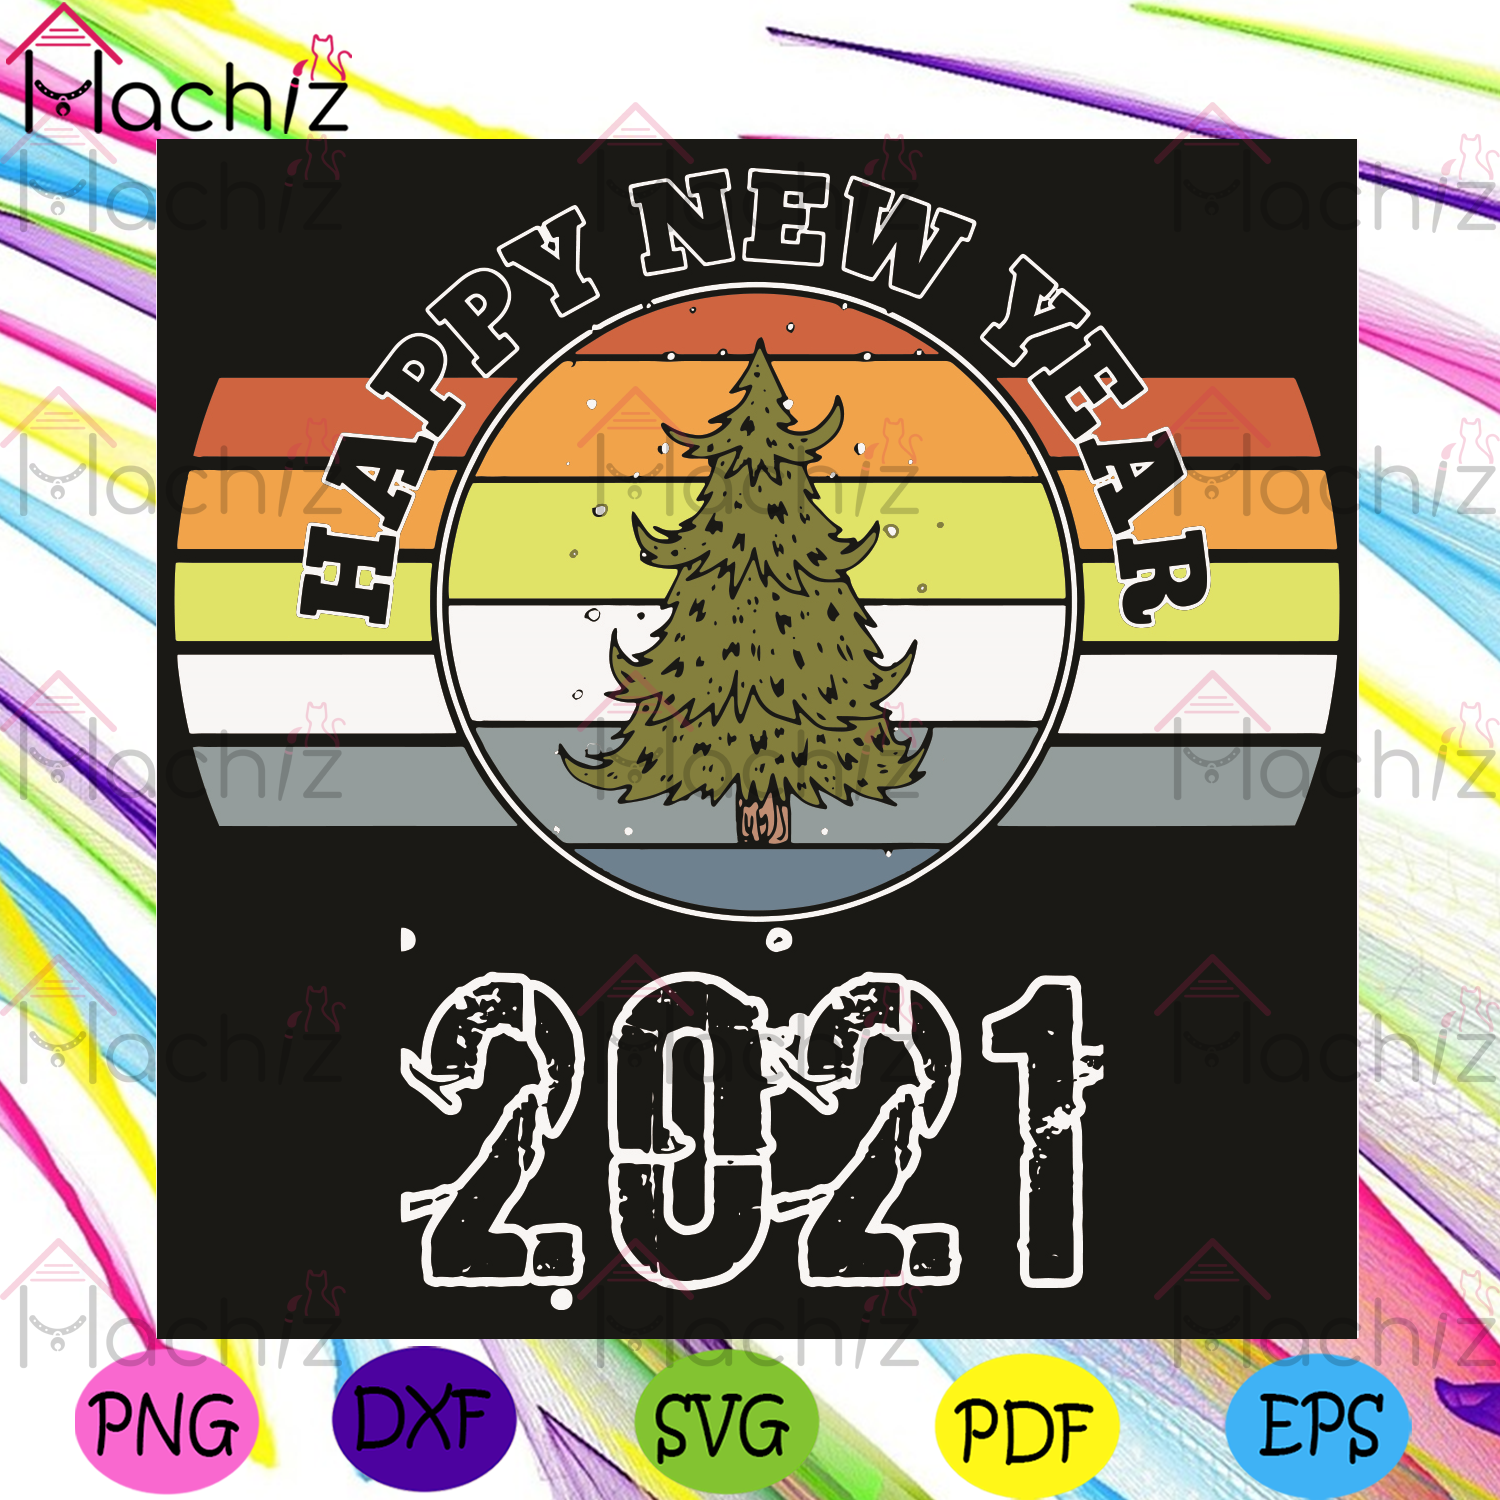 Happy New Year 2021 Svg, Christmas Svg, 2021 Svg, Christmas Tree Svg, Happy New Year Svg, Hello 2021 Svg, Goodbye 2020 Svg, Christmas Gifts Svg, Christmas Day Svg, Merry Christmas Svg, New Year Gift Svg, A Happy Year Svg